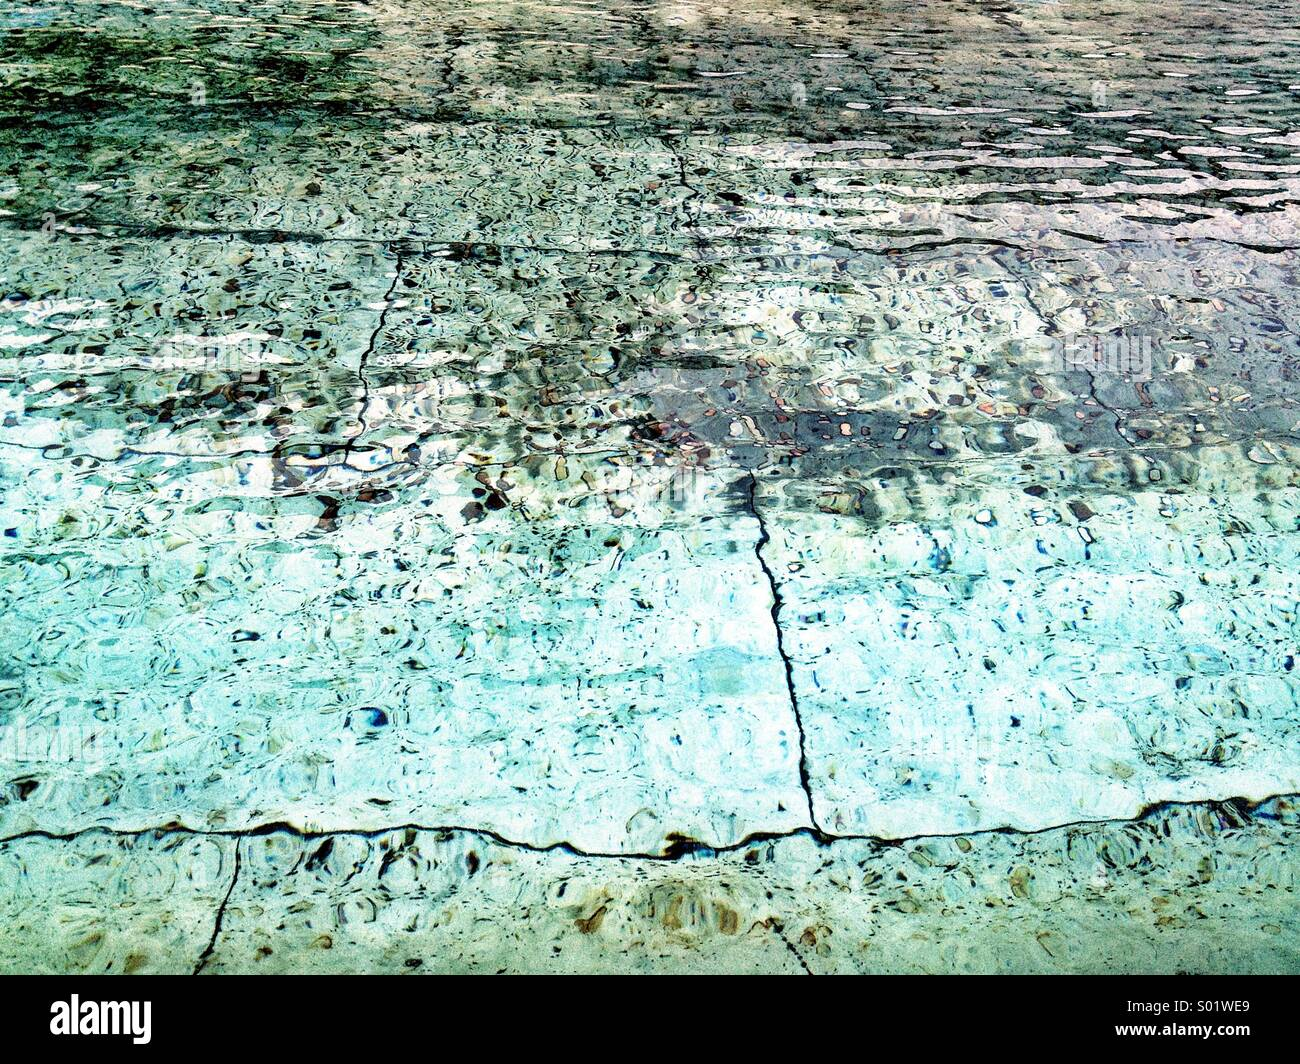 Turquoise water and stone texture Stock Photo